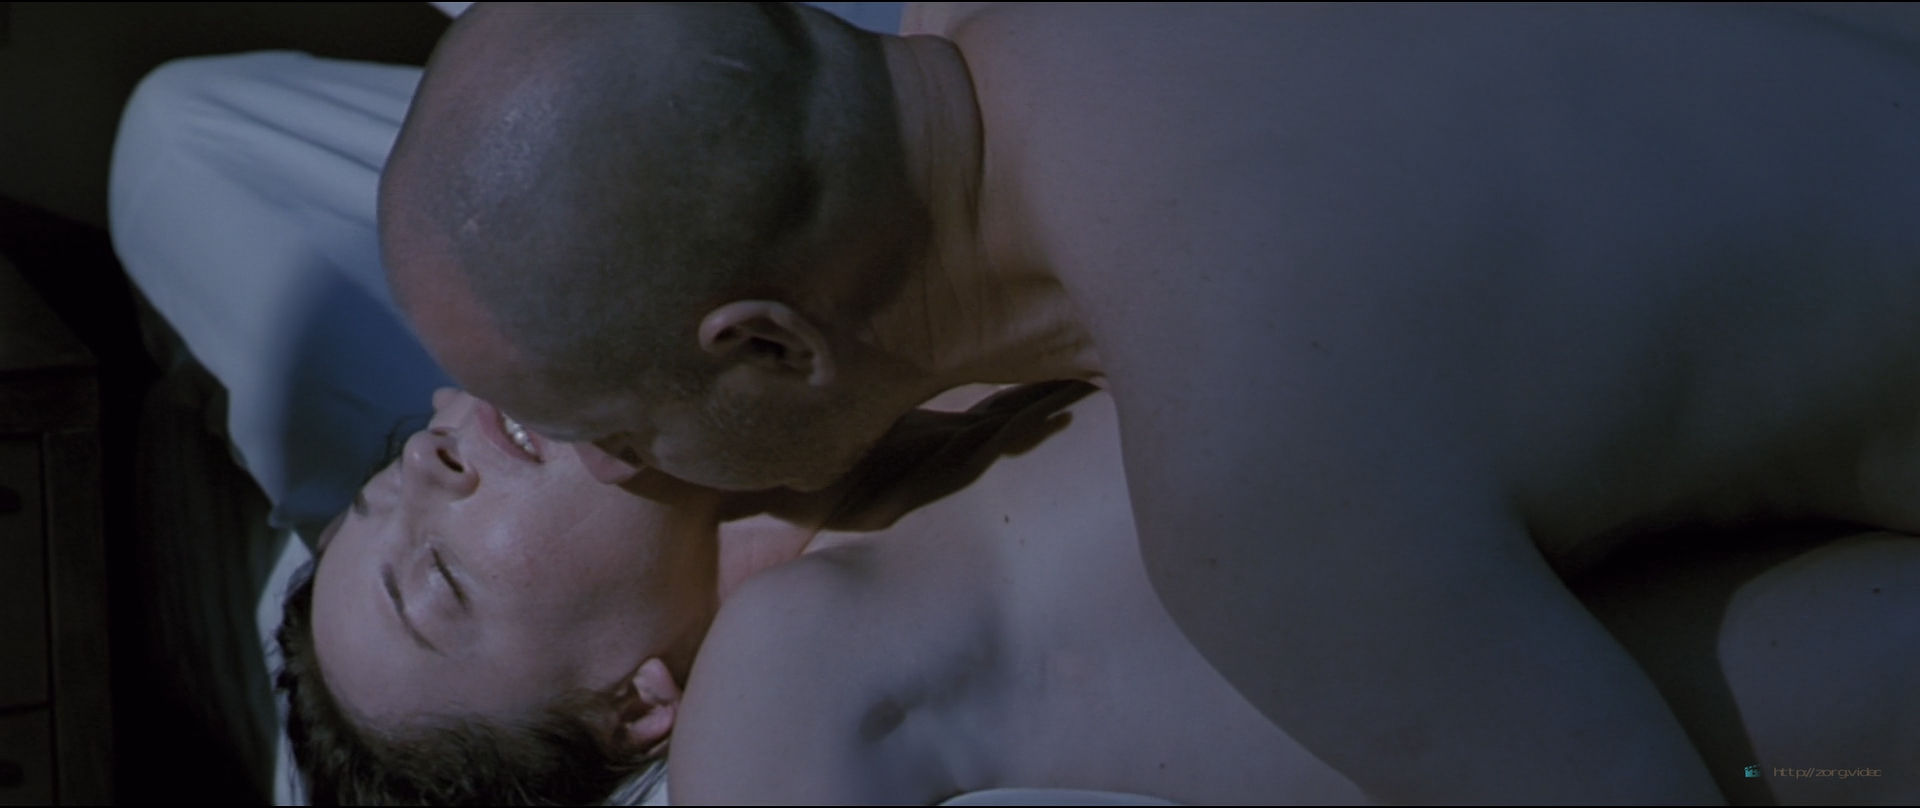 Connie Nielsen nude and Chloë Sevigny butt - Demonlover (2002) HD 1080p BluRay (6)